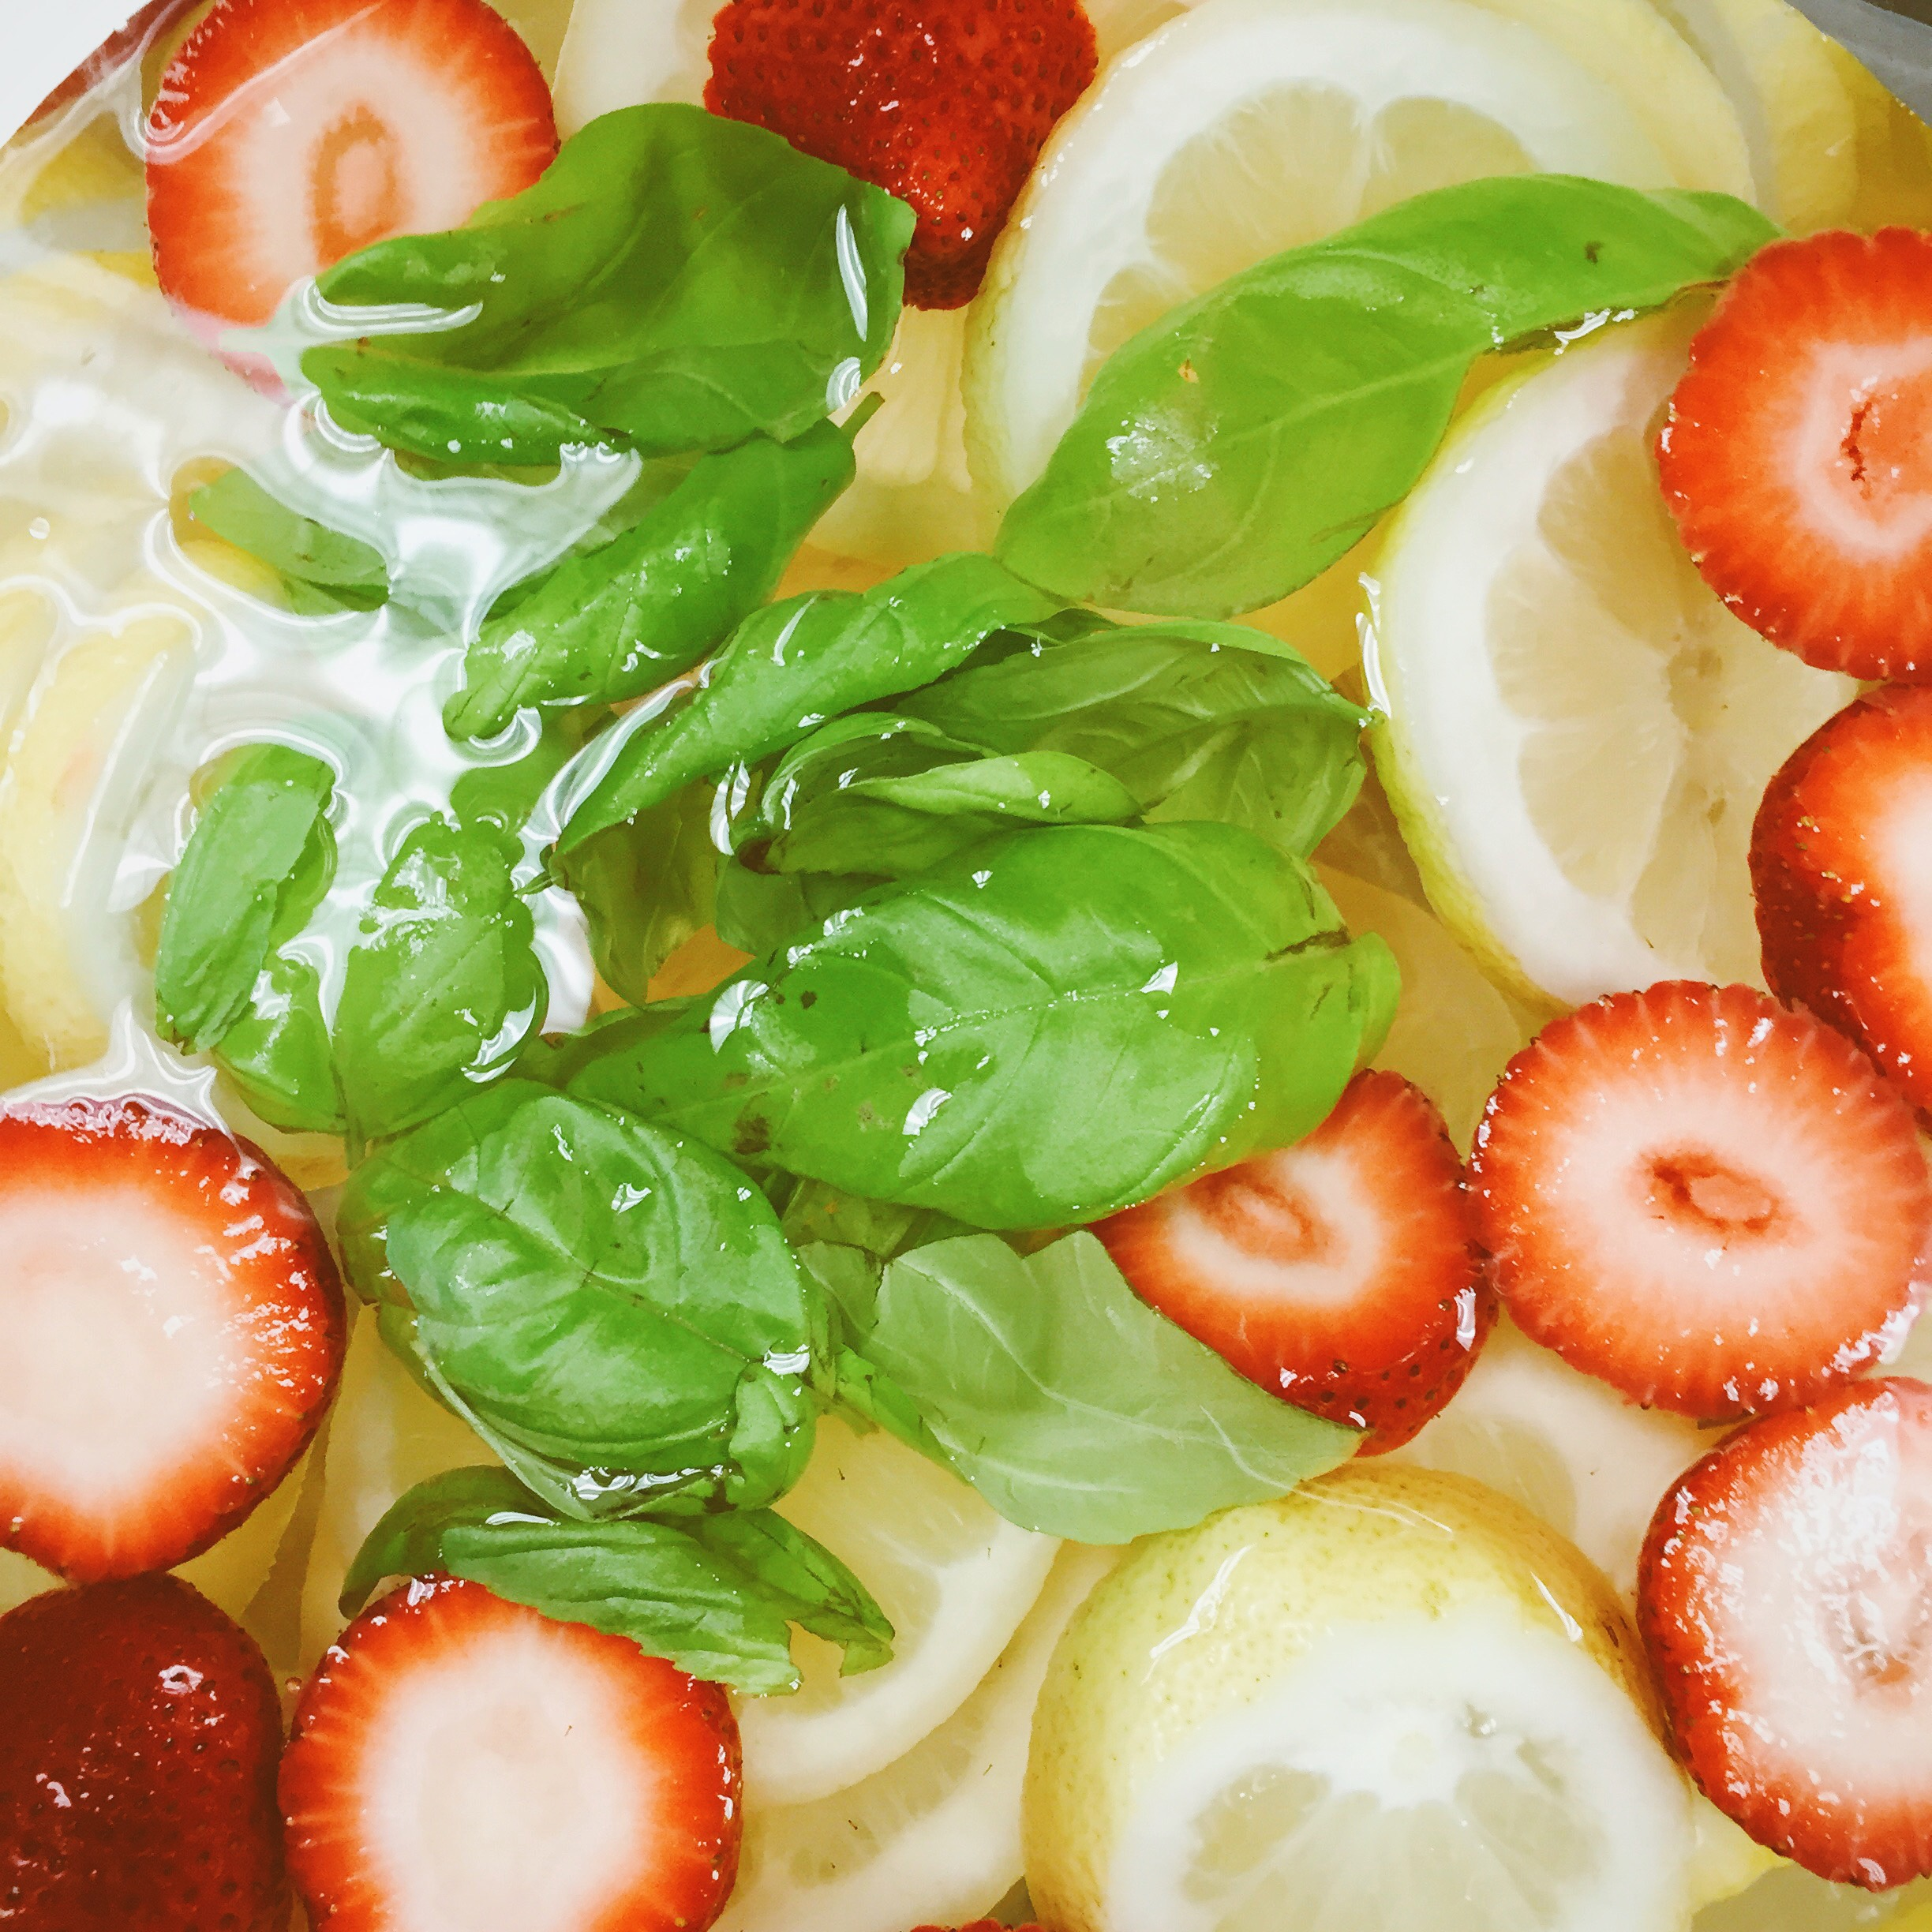 Stay healthy and hydrated with Water infusions. How to tutorial on www.ChefShayna.com